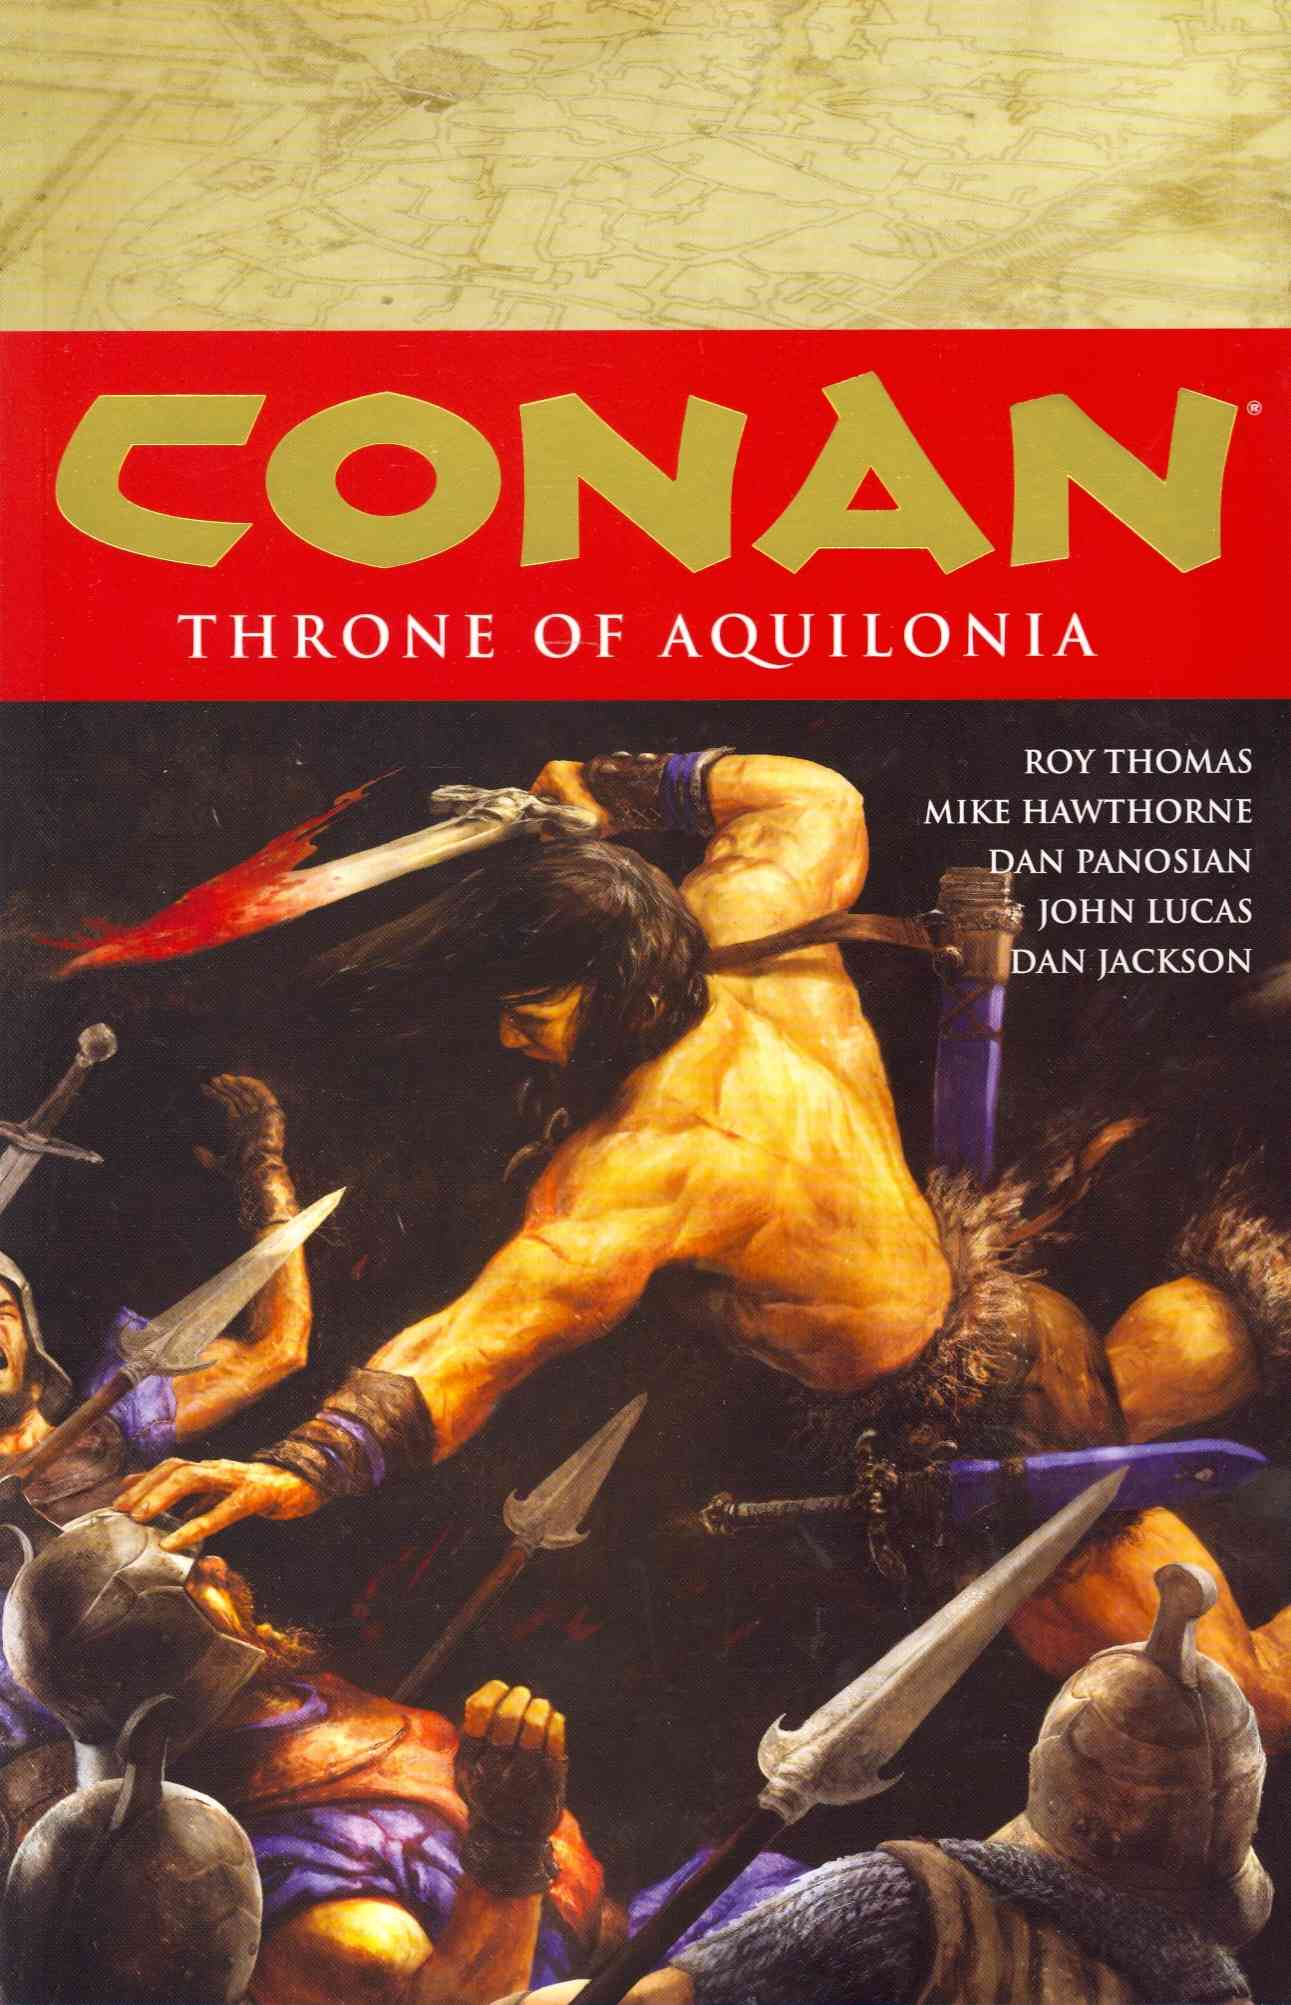 Conan 12 By Thomas, Roy/ Marshall, Dave (EDT)